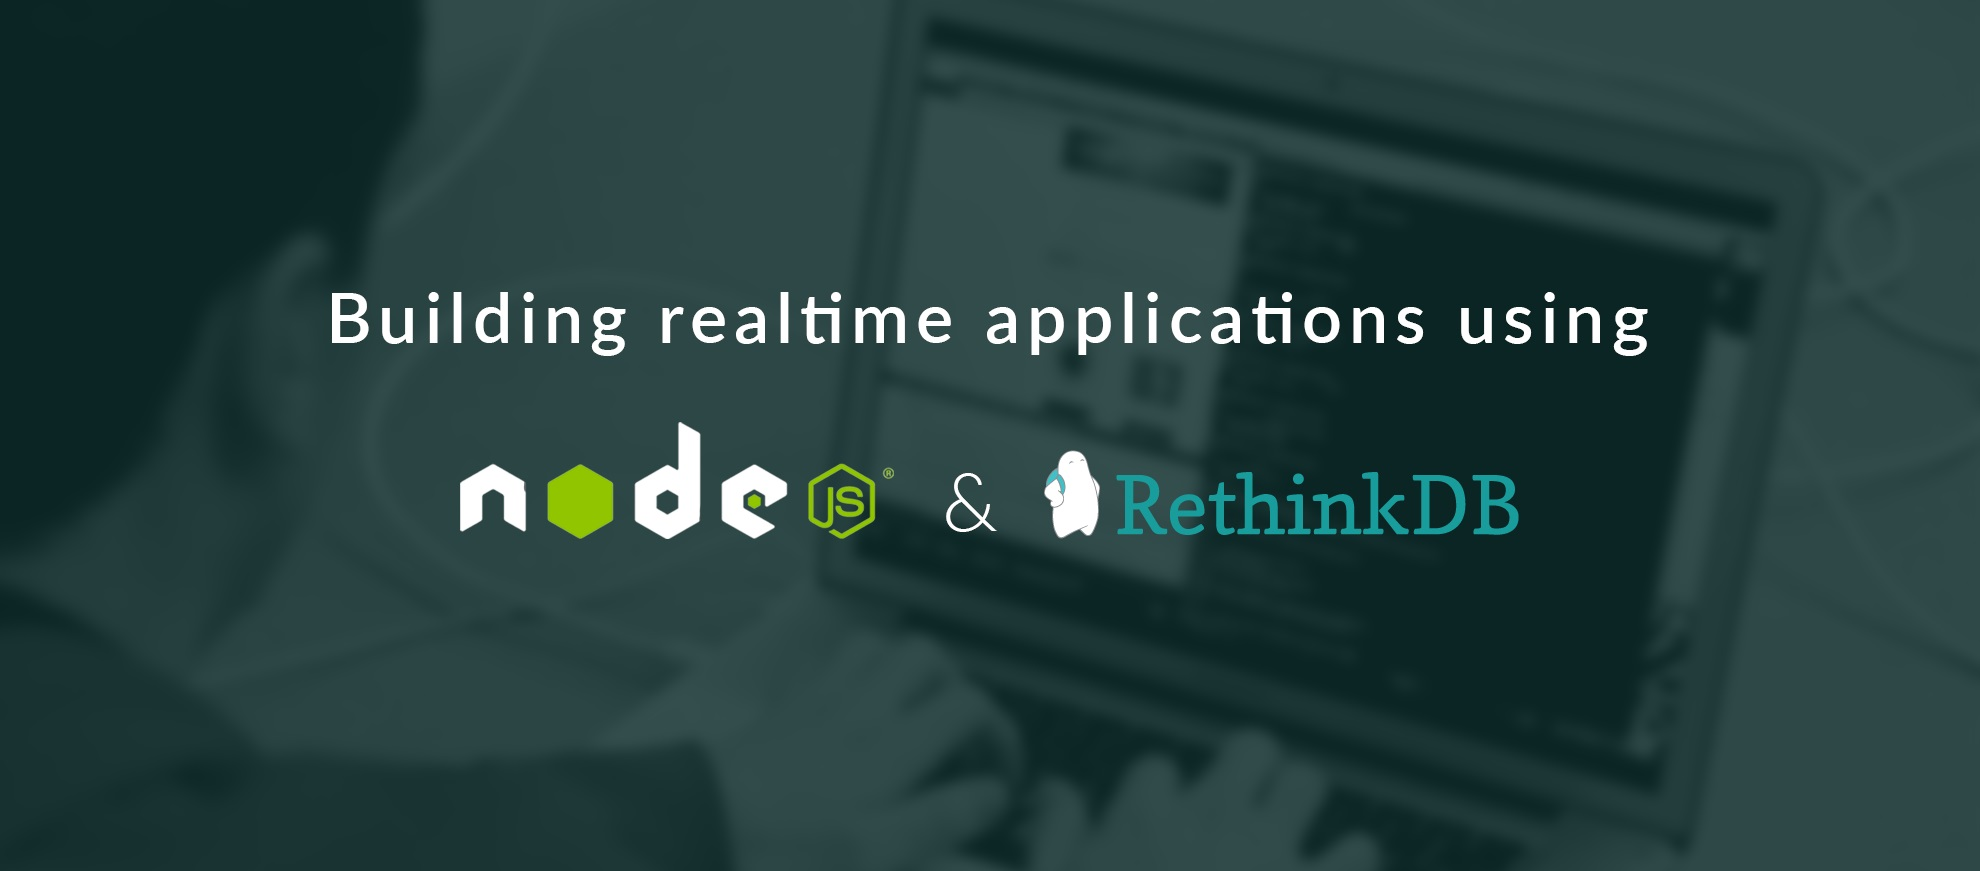 building-realtime-applications-using-nodejs-rethinkdb